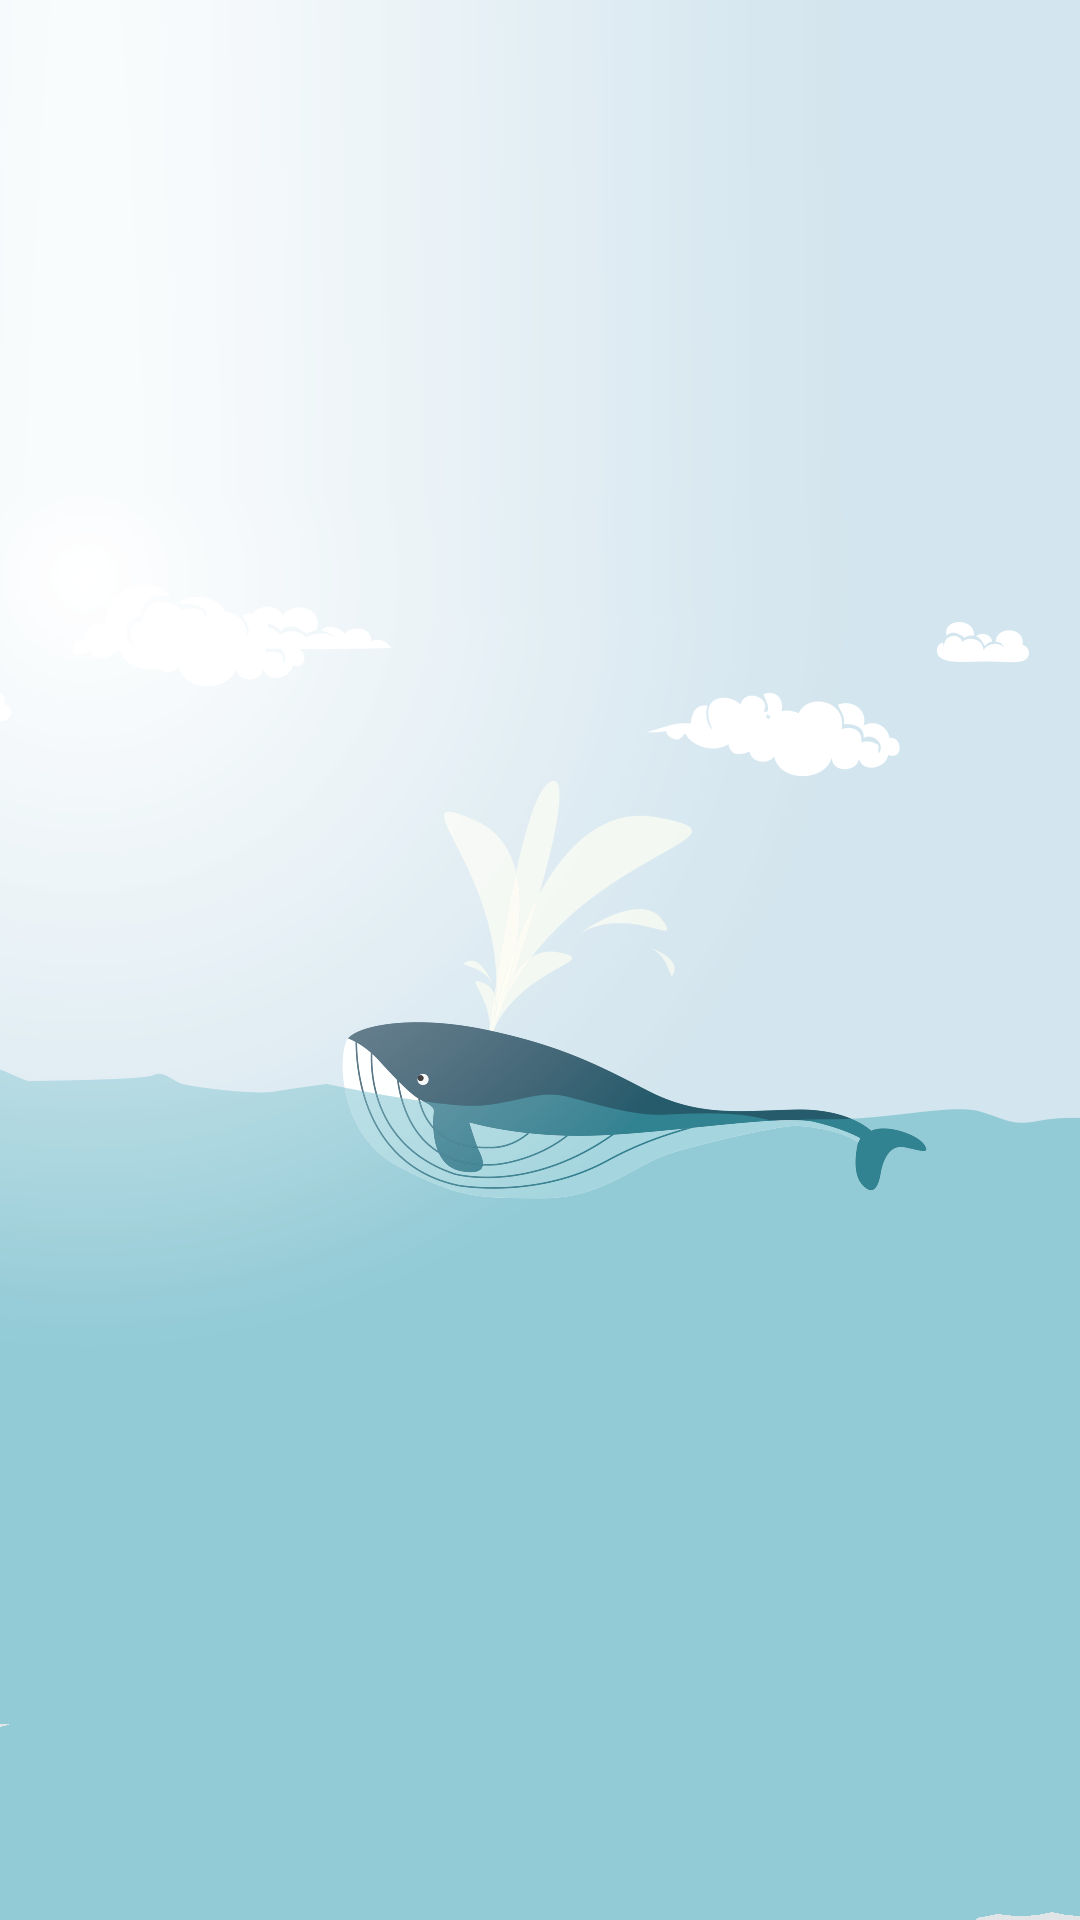 Wallpaper iphone minimal - Minimal Iphone Wallpapers Happy Whale More